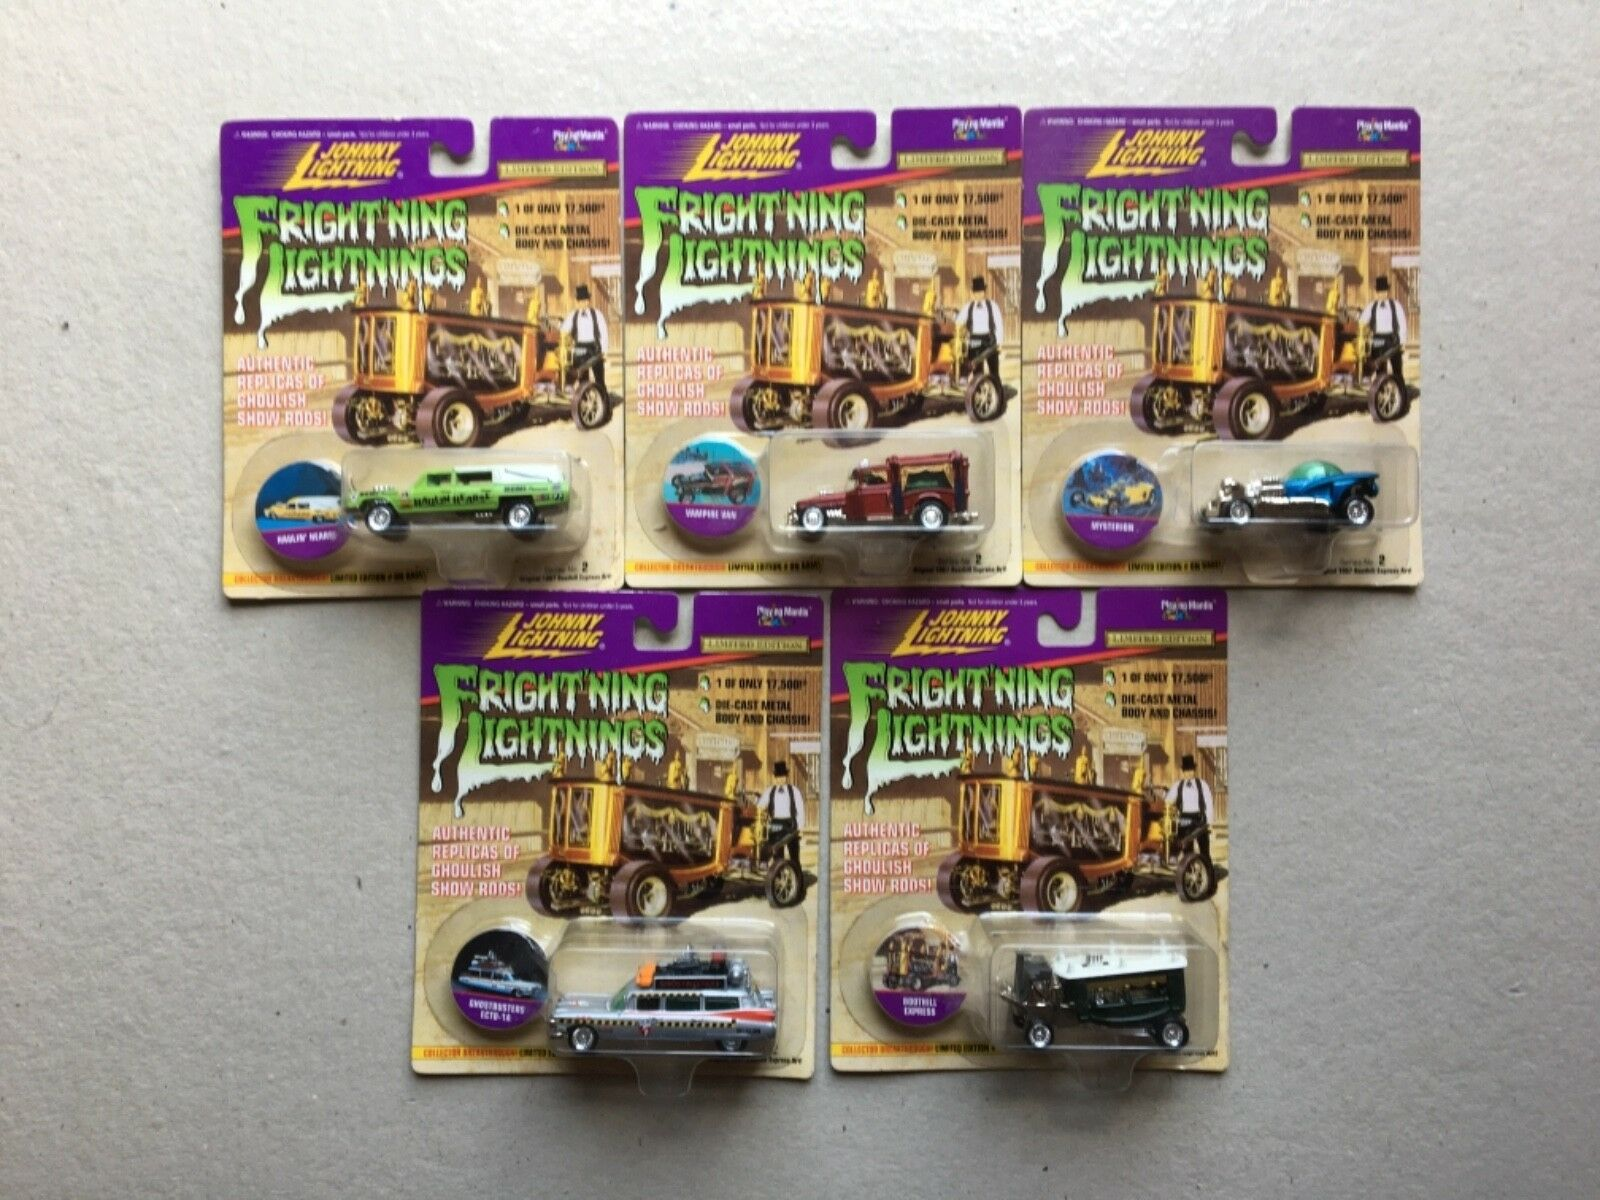 Johnny lightning Frightning lightning Series 2 {5out of a set of 7}